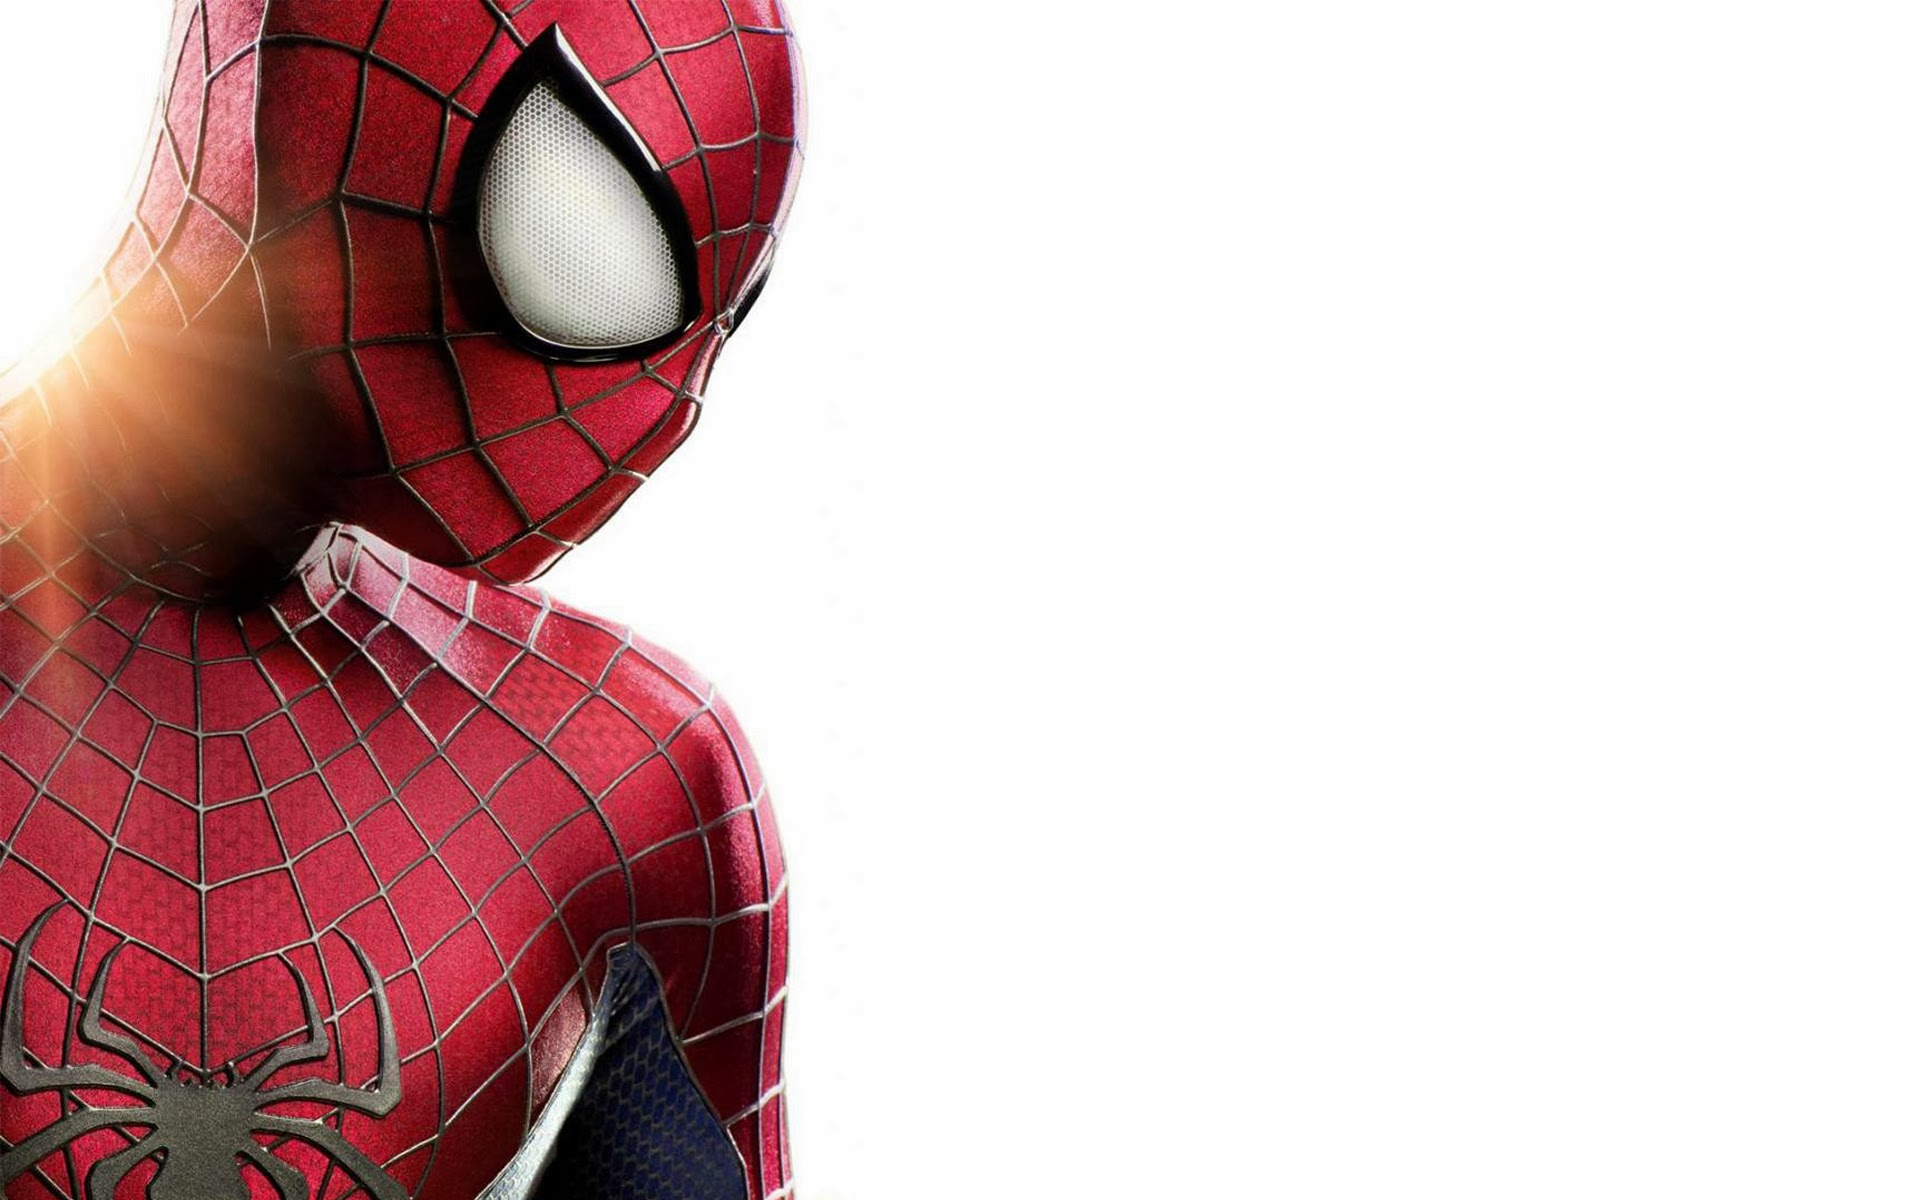 Spiderman Widescreen Images Is Cool Wallpapers